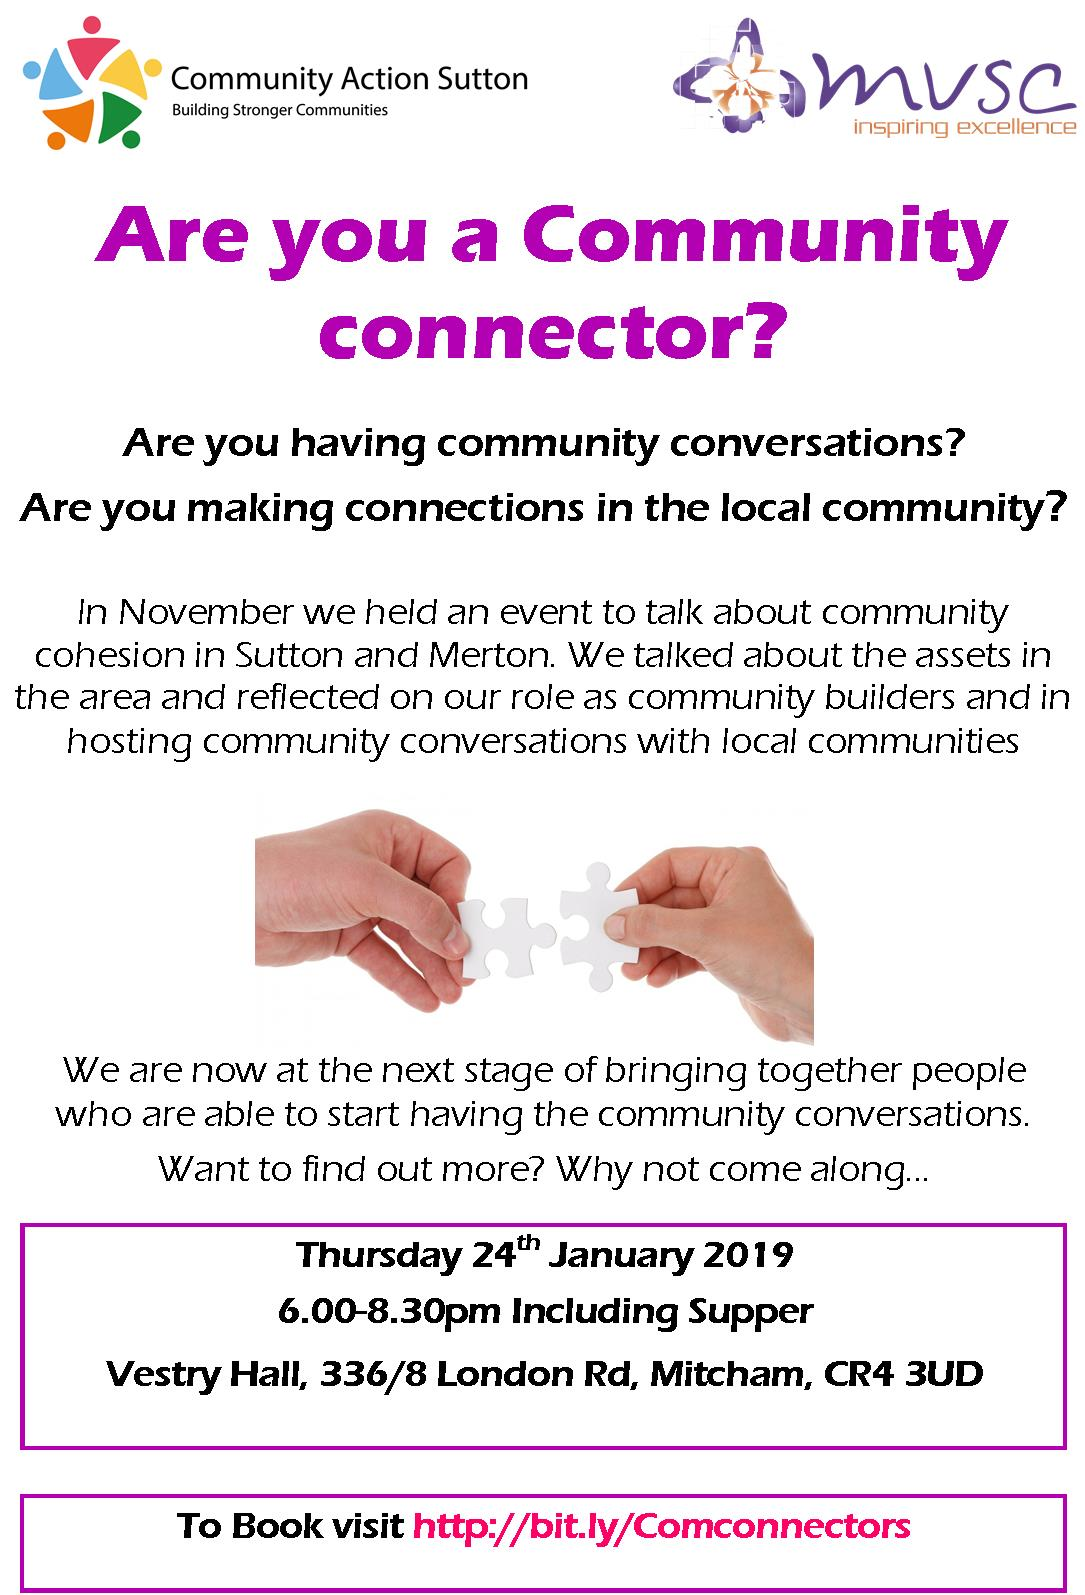 Community Connector Flyer image